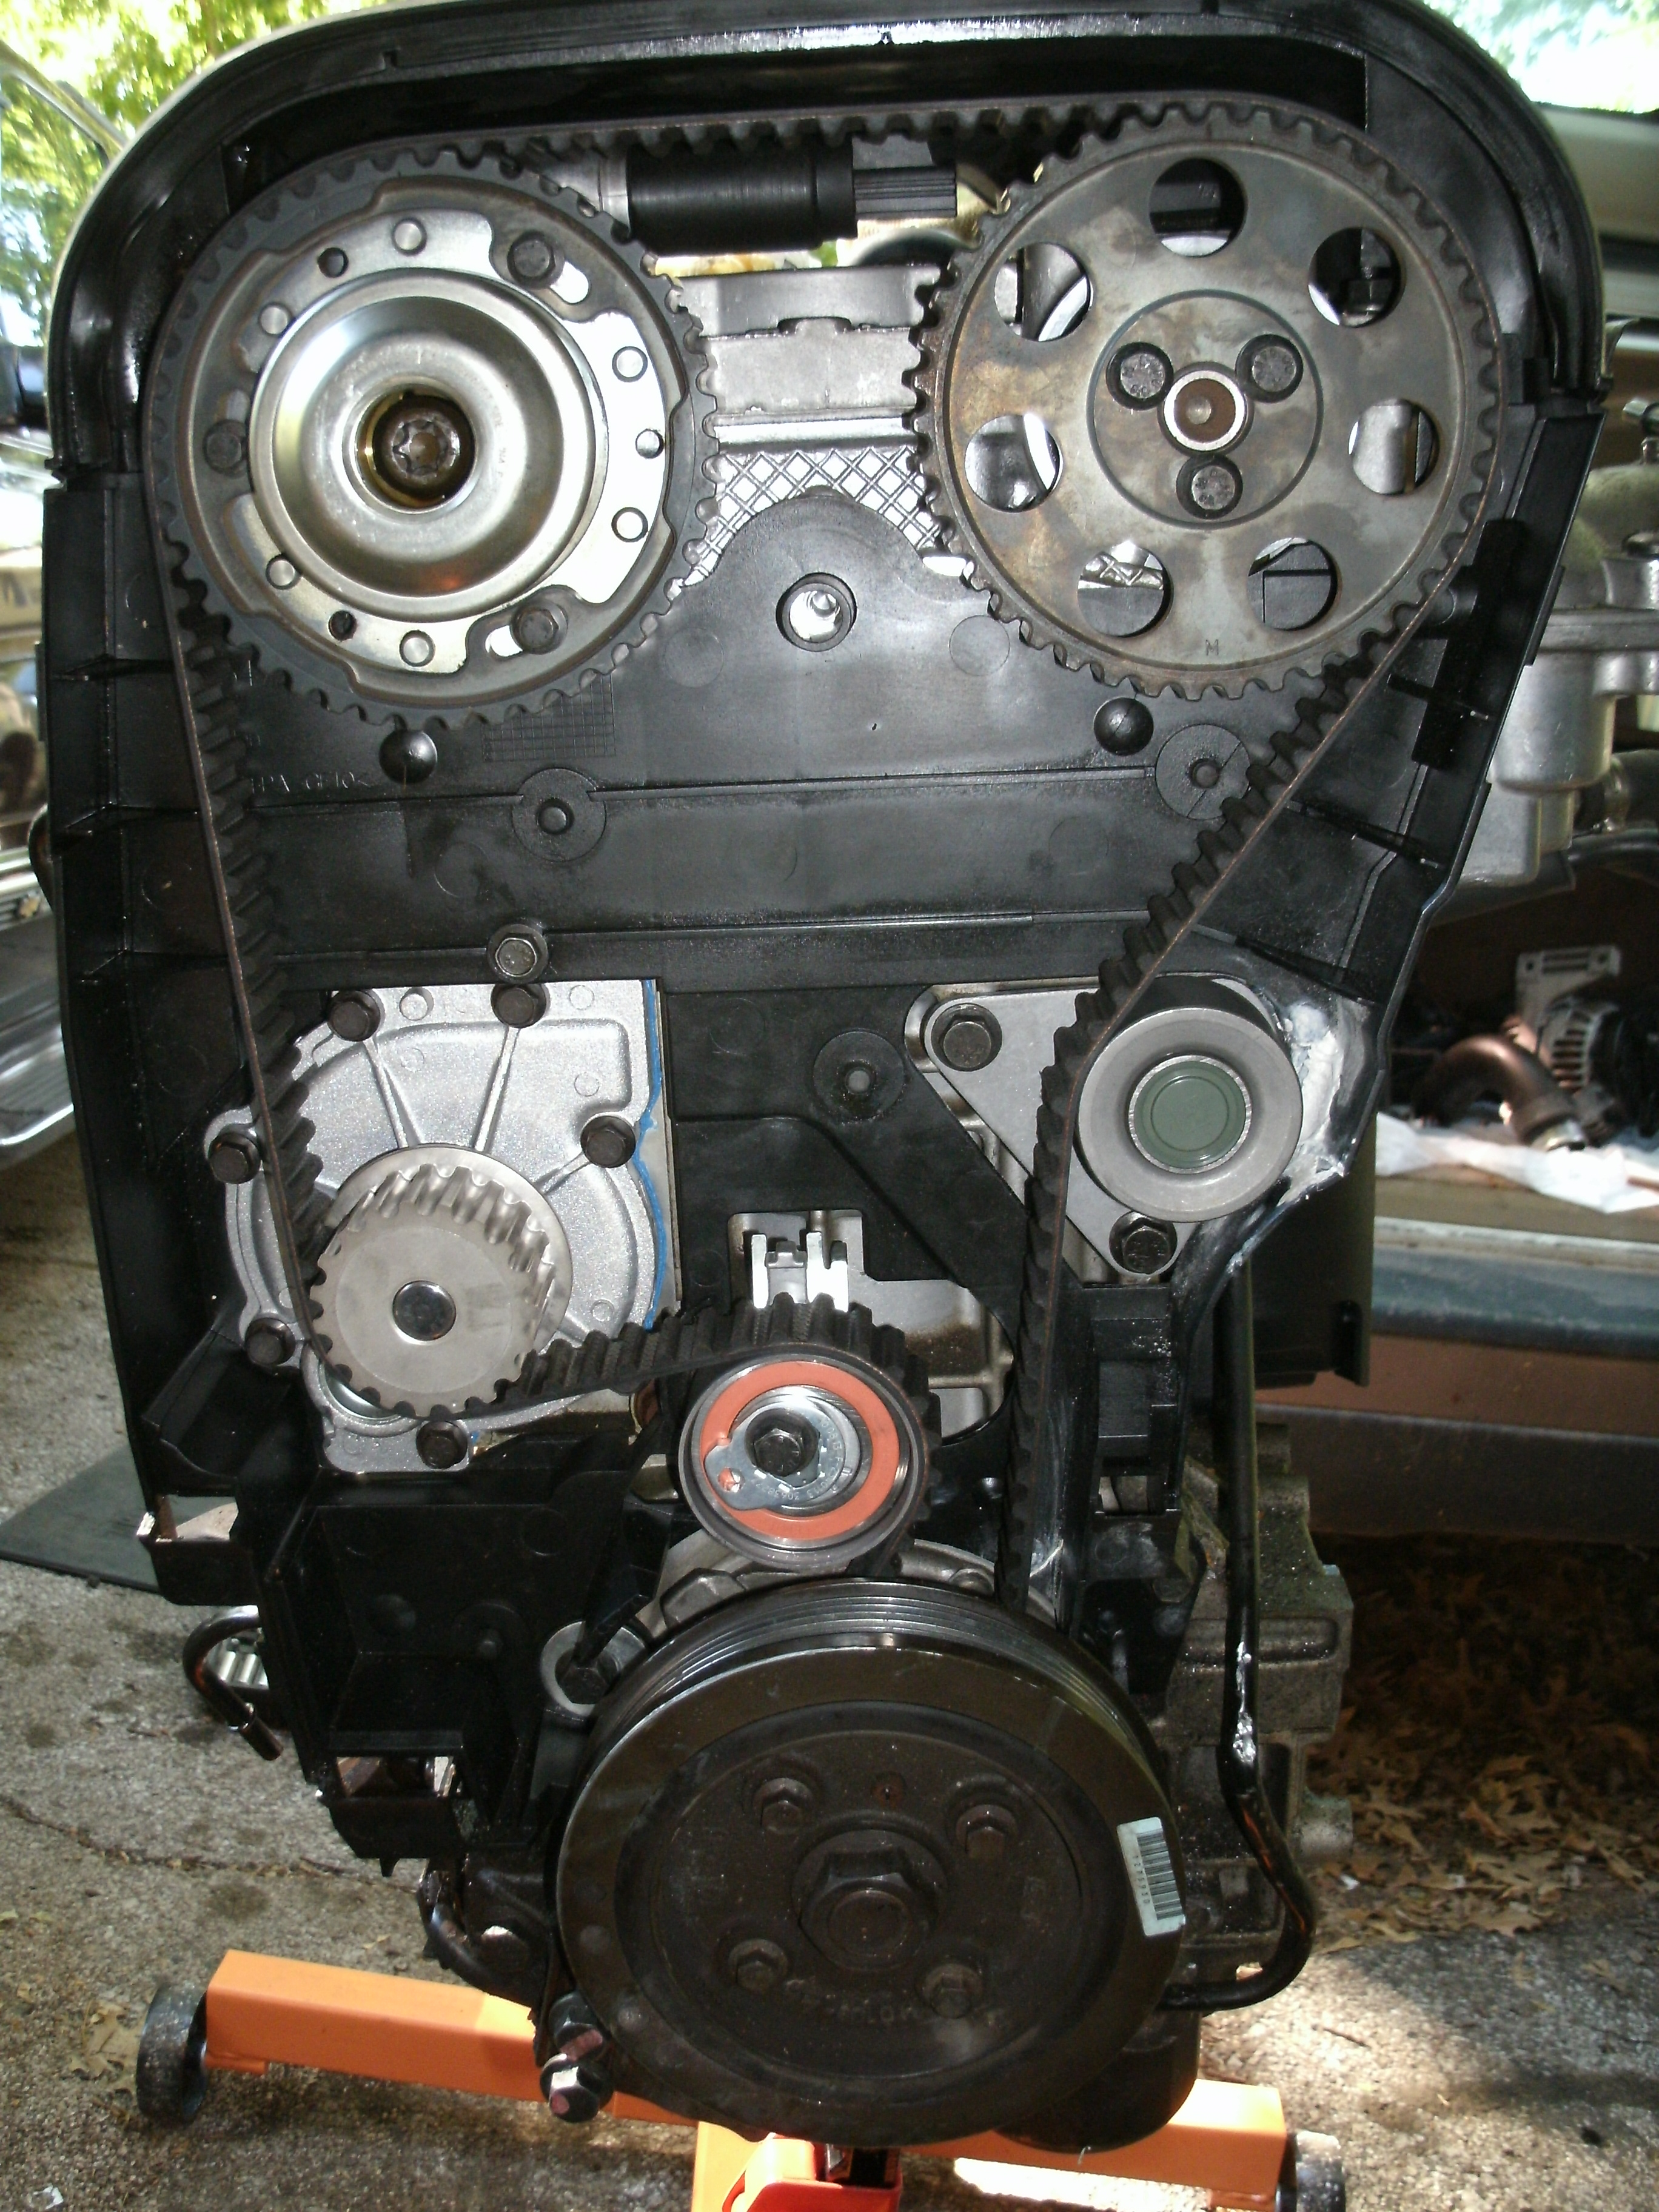 Volvo S40 Engine Diagram Of Compartment Ongoing Thread 99 V70 Xc Swap 2001